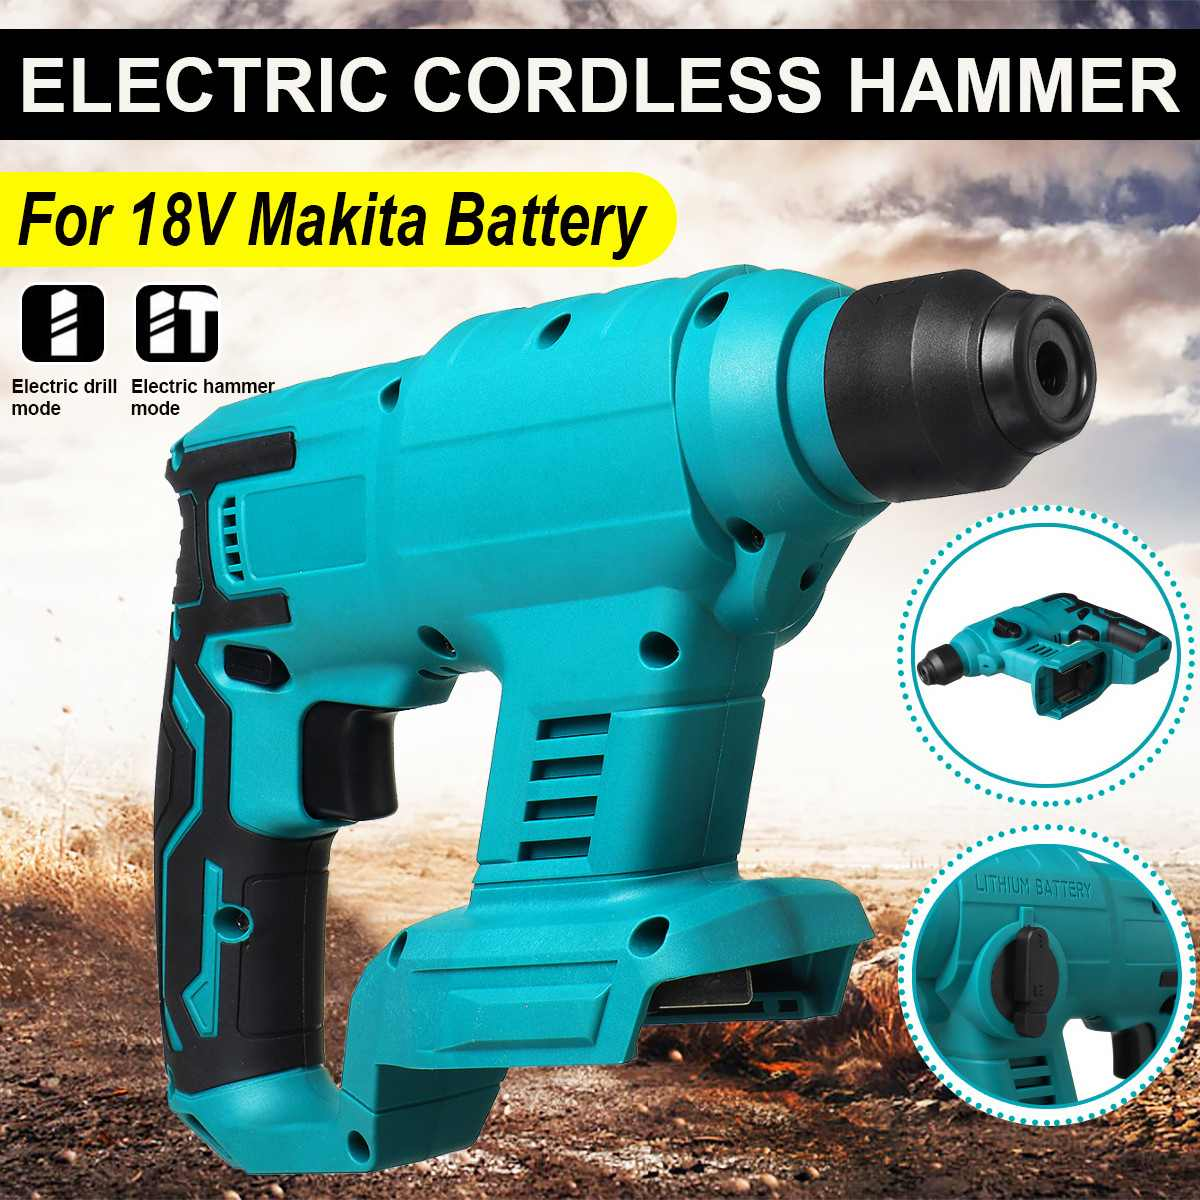 Rotary Makita Hammer Cordless Heavy Electric Hammer Battery Drill Drill Duty For Brushless Impact Multifunction 18V Rechargeable